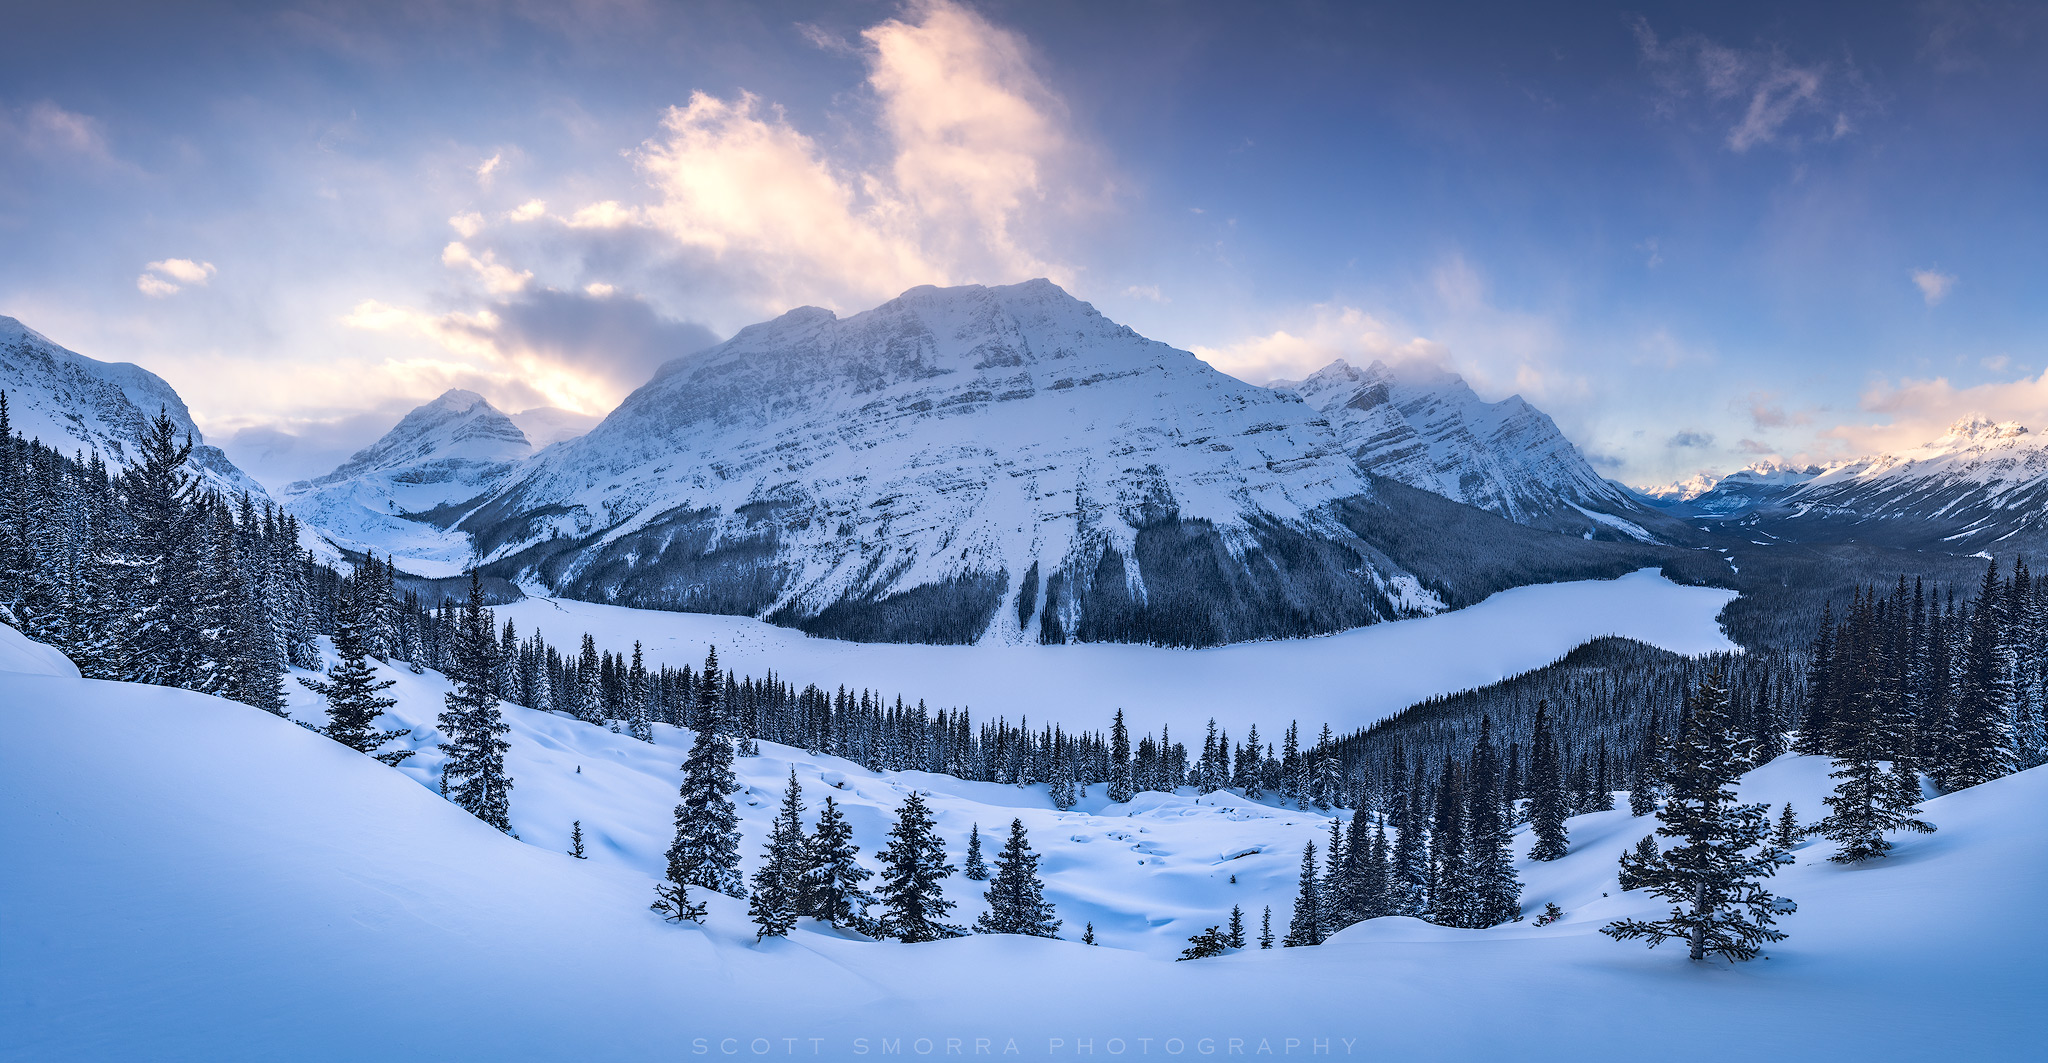 Fine Art Limited Edition of 50 - Sunset light at the Peyto Lake Overlook in Banff National Park, Alberta, Canada. The view from...